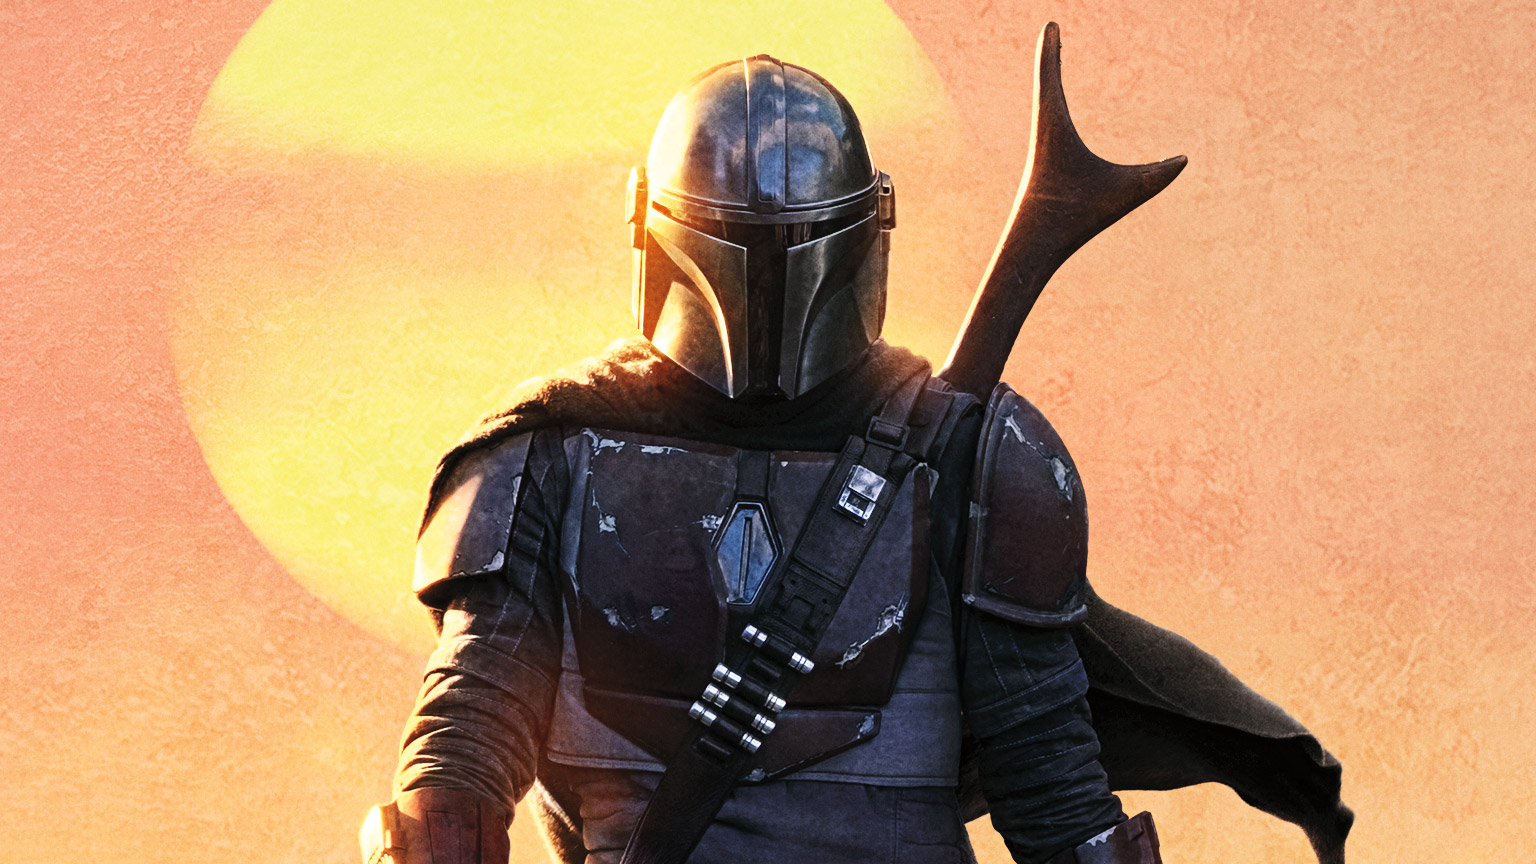 Star Wars: The Mandalorian Season 2 To Be Released On October 2020